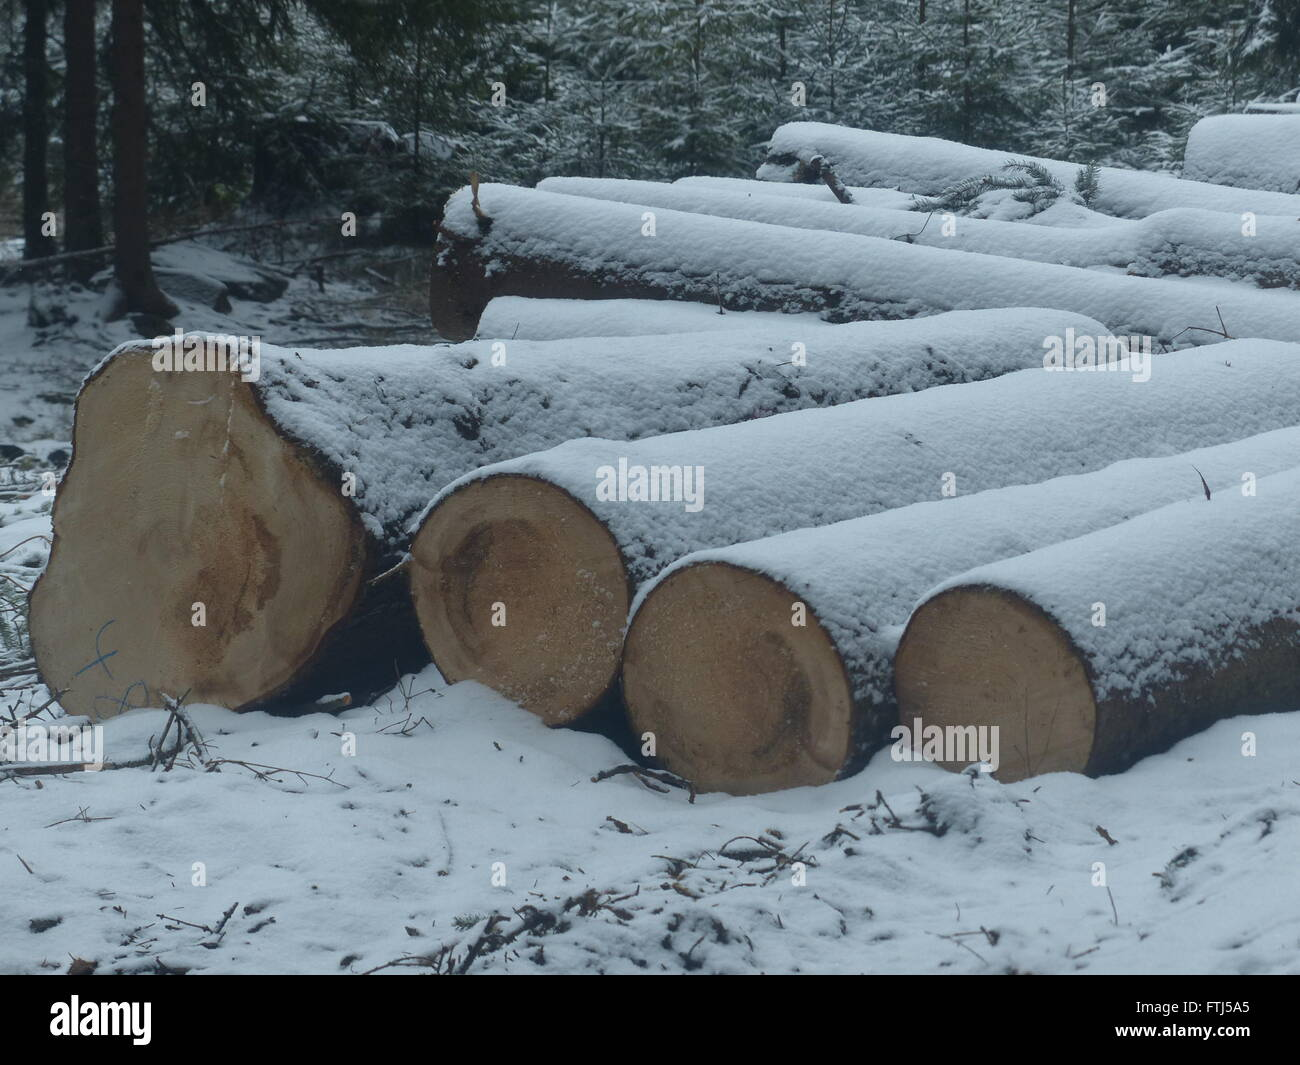 Harvested spruce logs lay on the side of the road to be picked up - Stock Image